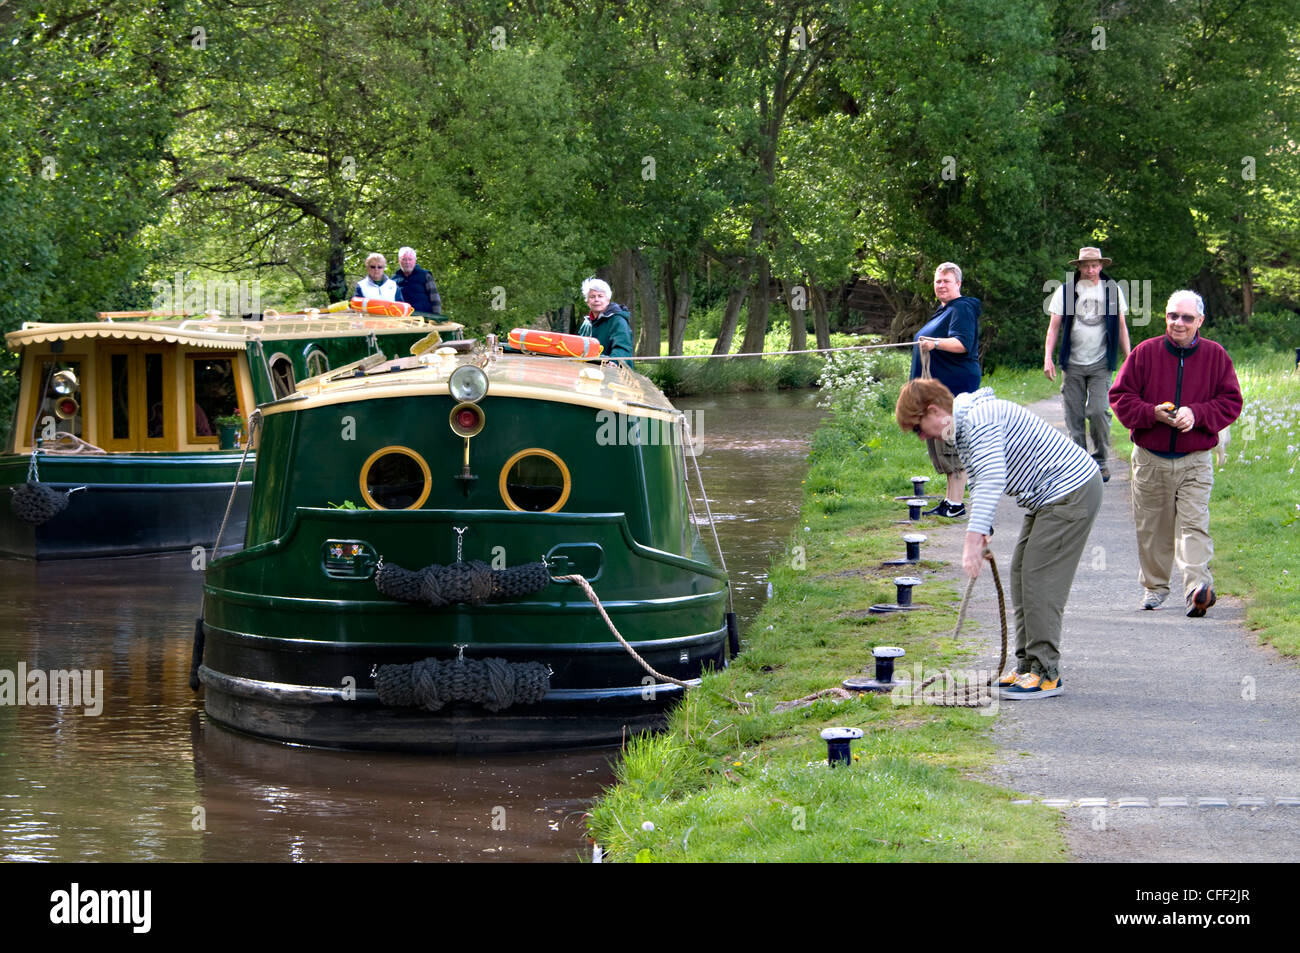 Holiday hire barges on the Monmouthshire and Brecon Canal at Talybont in the Brecon Beacons National Park,Wales,Britain. - Stock Image